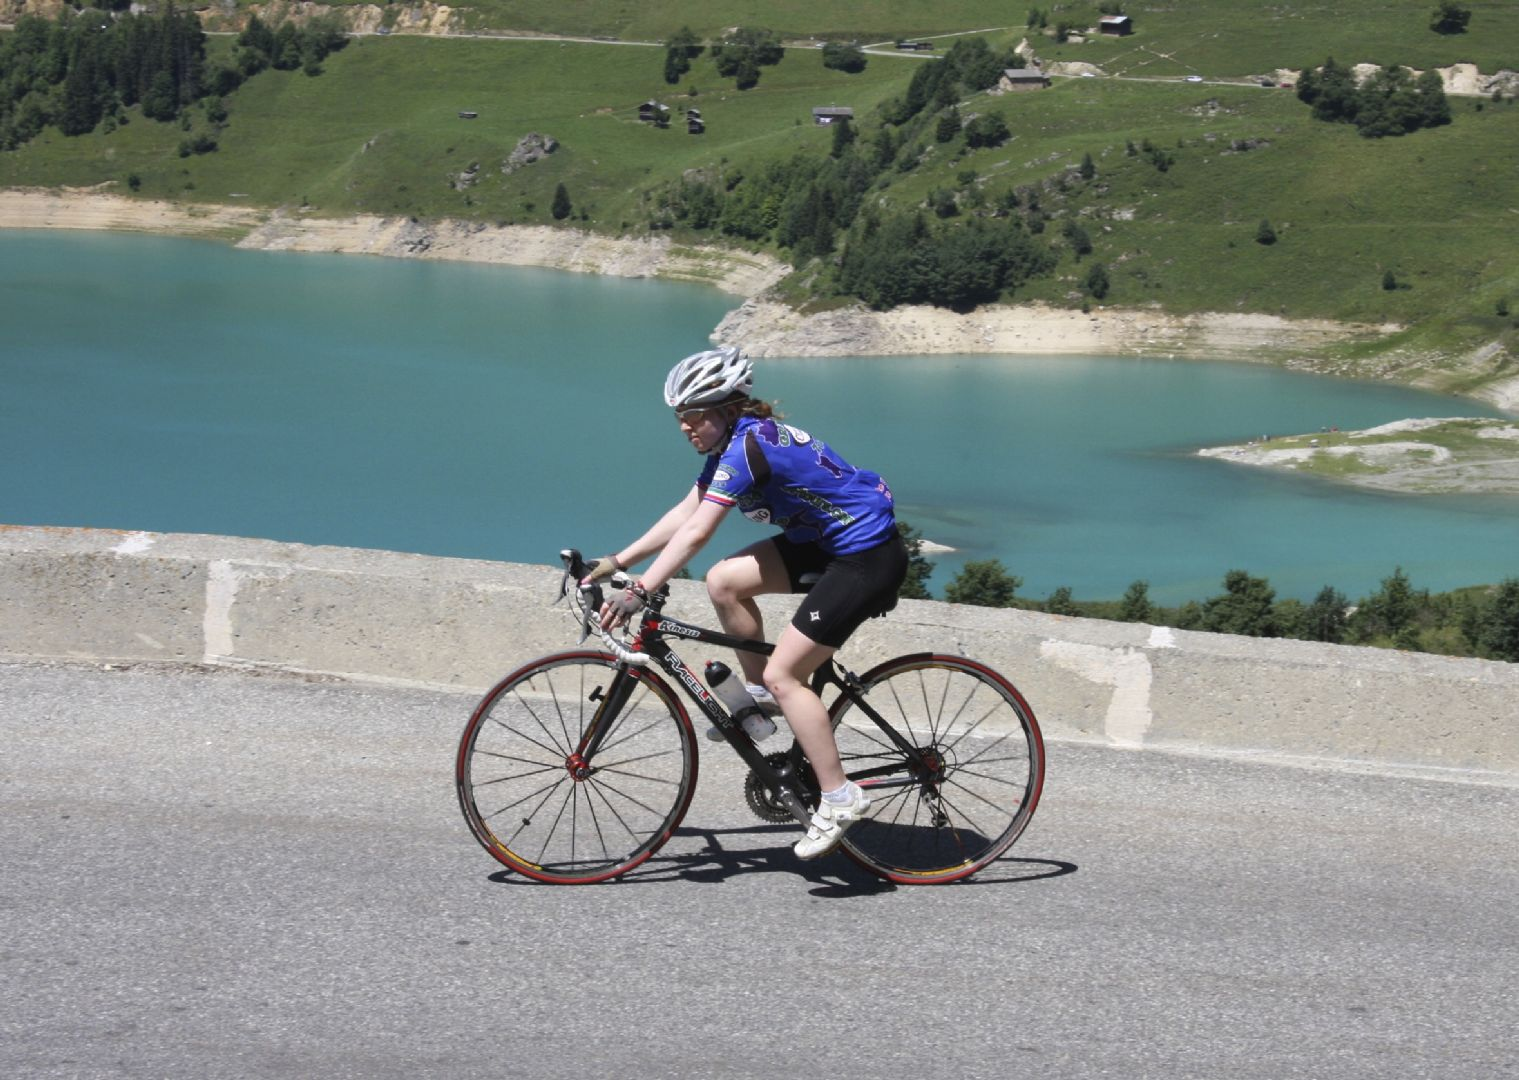 France Alps Classic Road Cycling 11.jpg - France - Classic Alps Passes - Alpine Introduction - Guided Road Cycling Holiday - Road Cycling